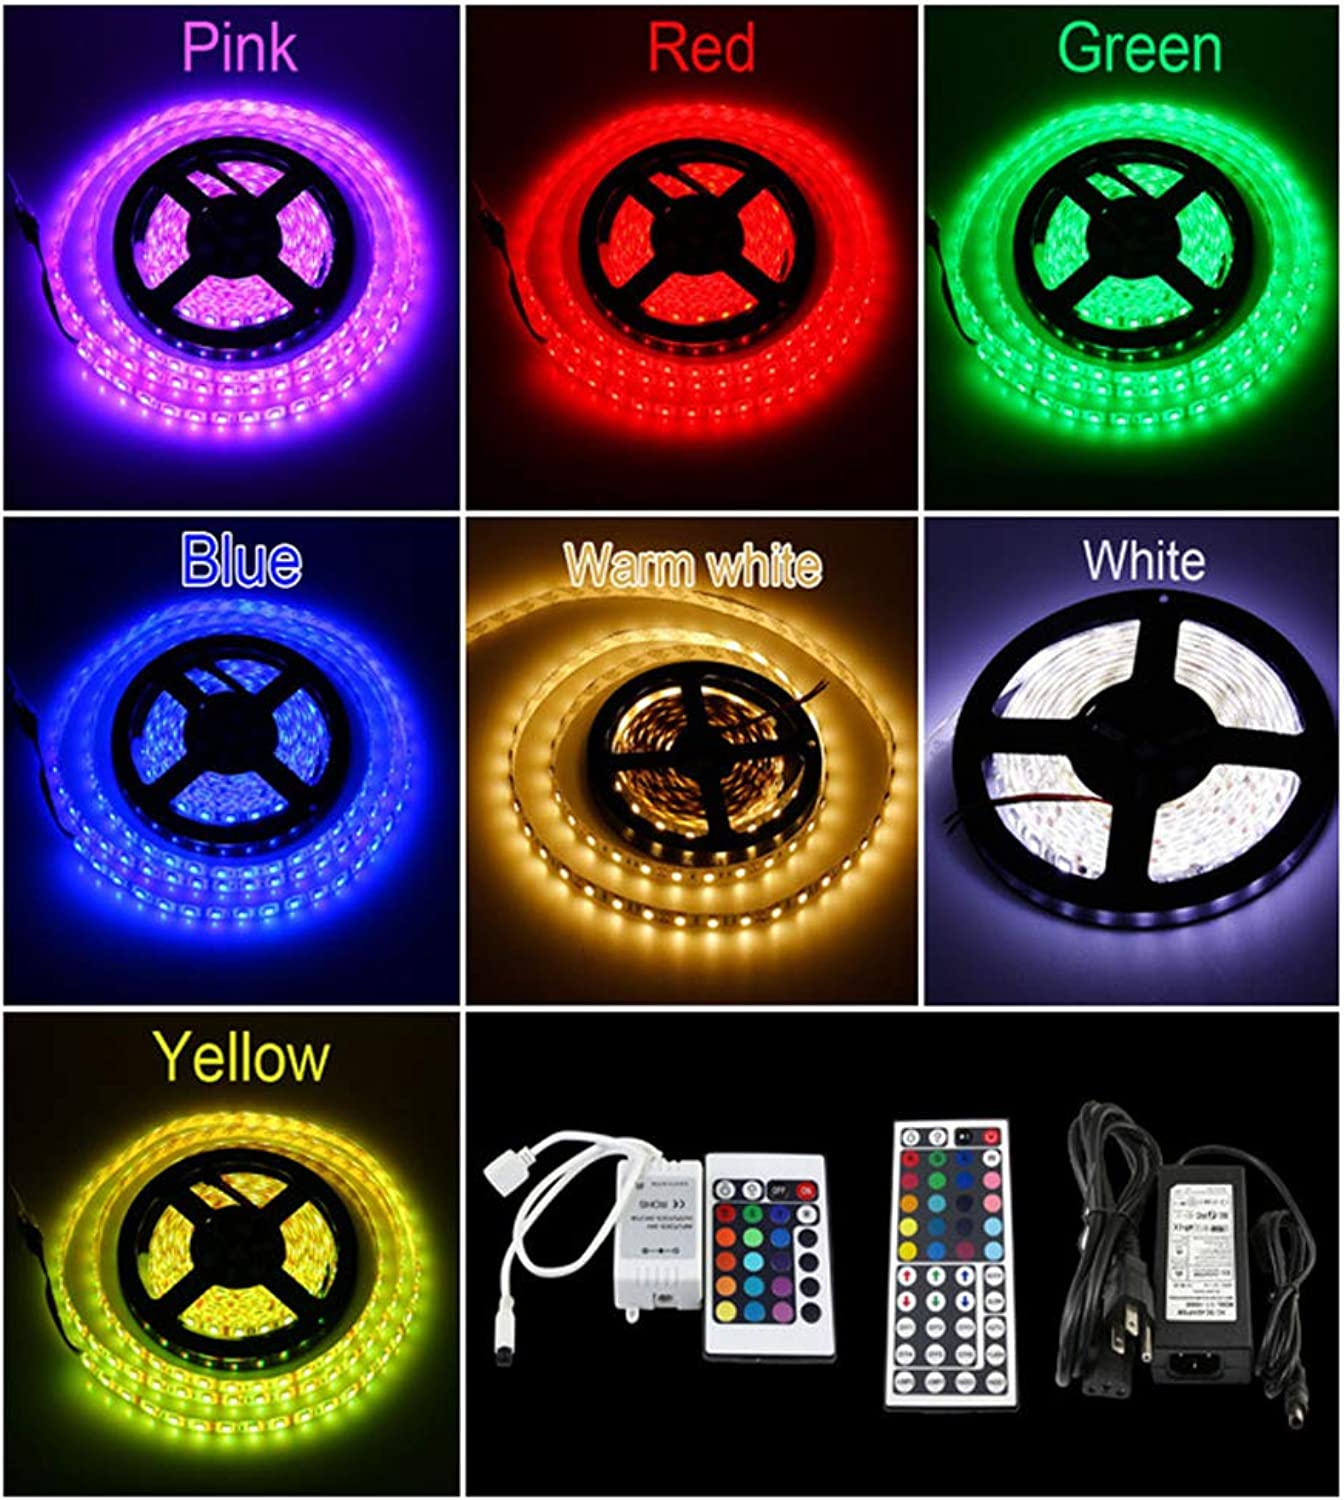 SELCNG Wasserdichte LED Strip, TV Hintergrundbeleuchtung, LED Strip, Strip Licht, Seilbeleuchtung, Küche LED Beleuchtung, 393in lamp with 300 lamp +44 button controller +5A